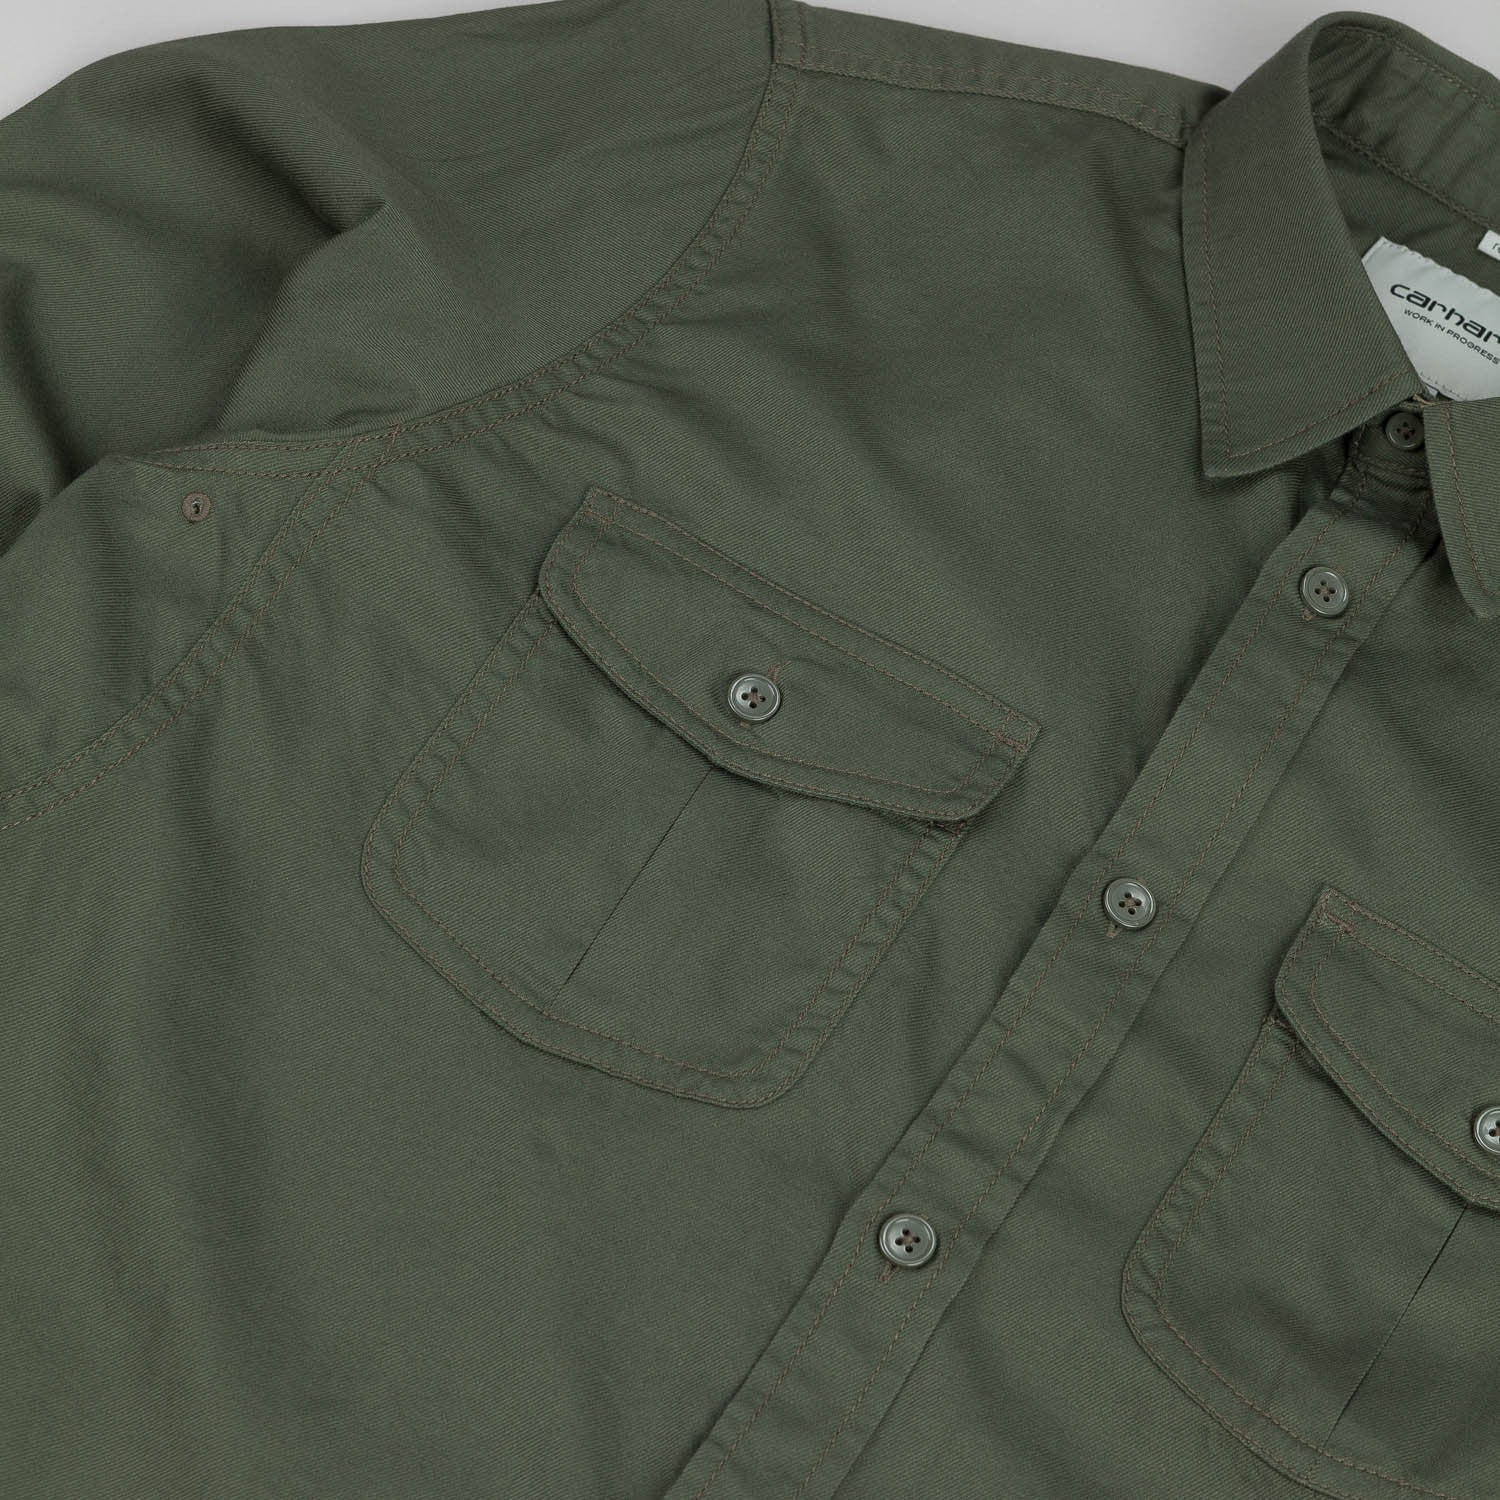 Carhartt Robbins L/S Shirt - Cotton Leaf Green